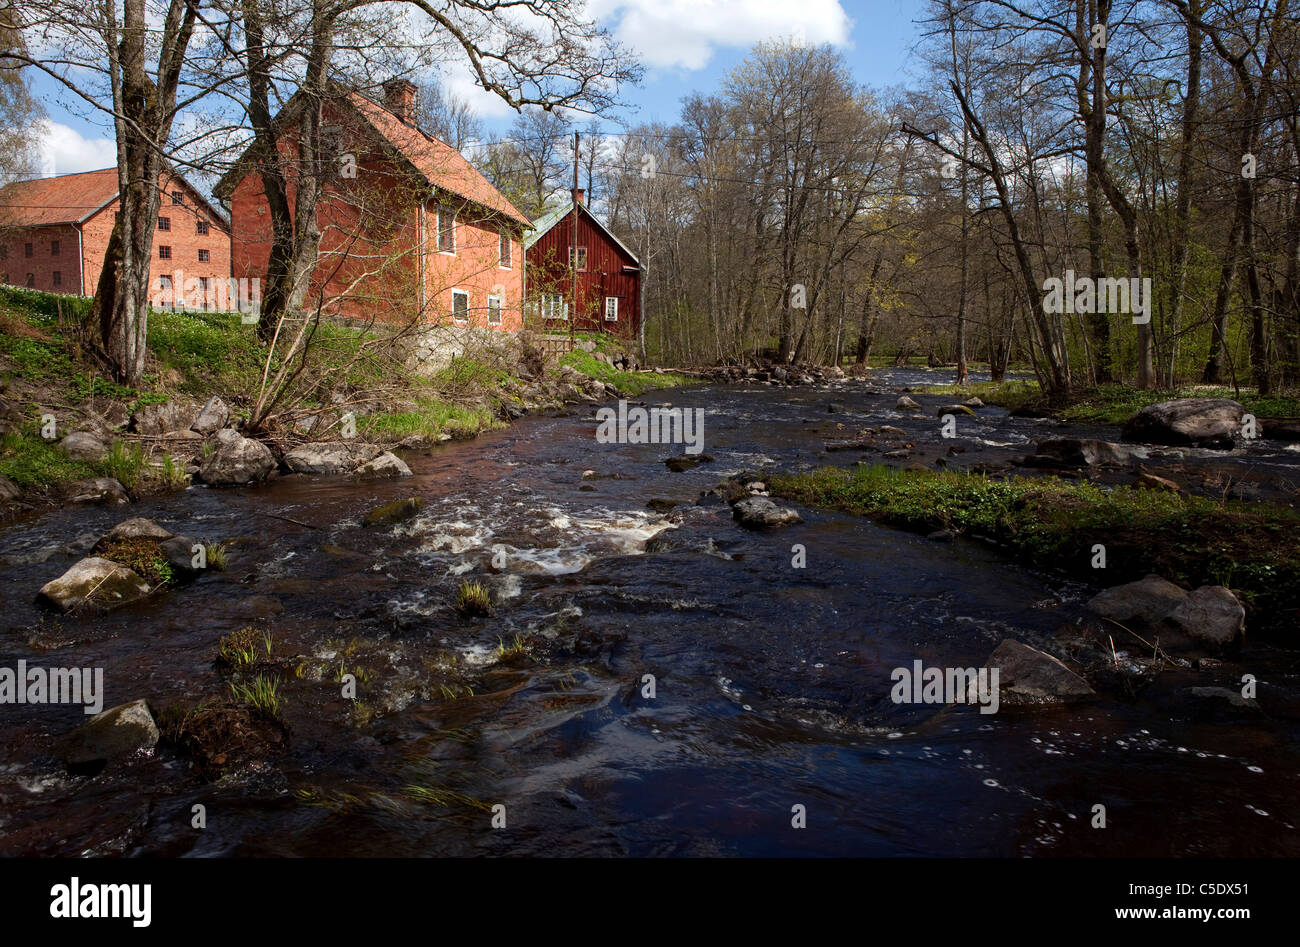 Svartån stream with country houses and bare trees in the background at Orebro, Sweden - Stock Image